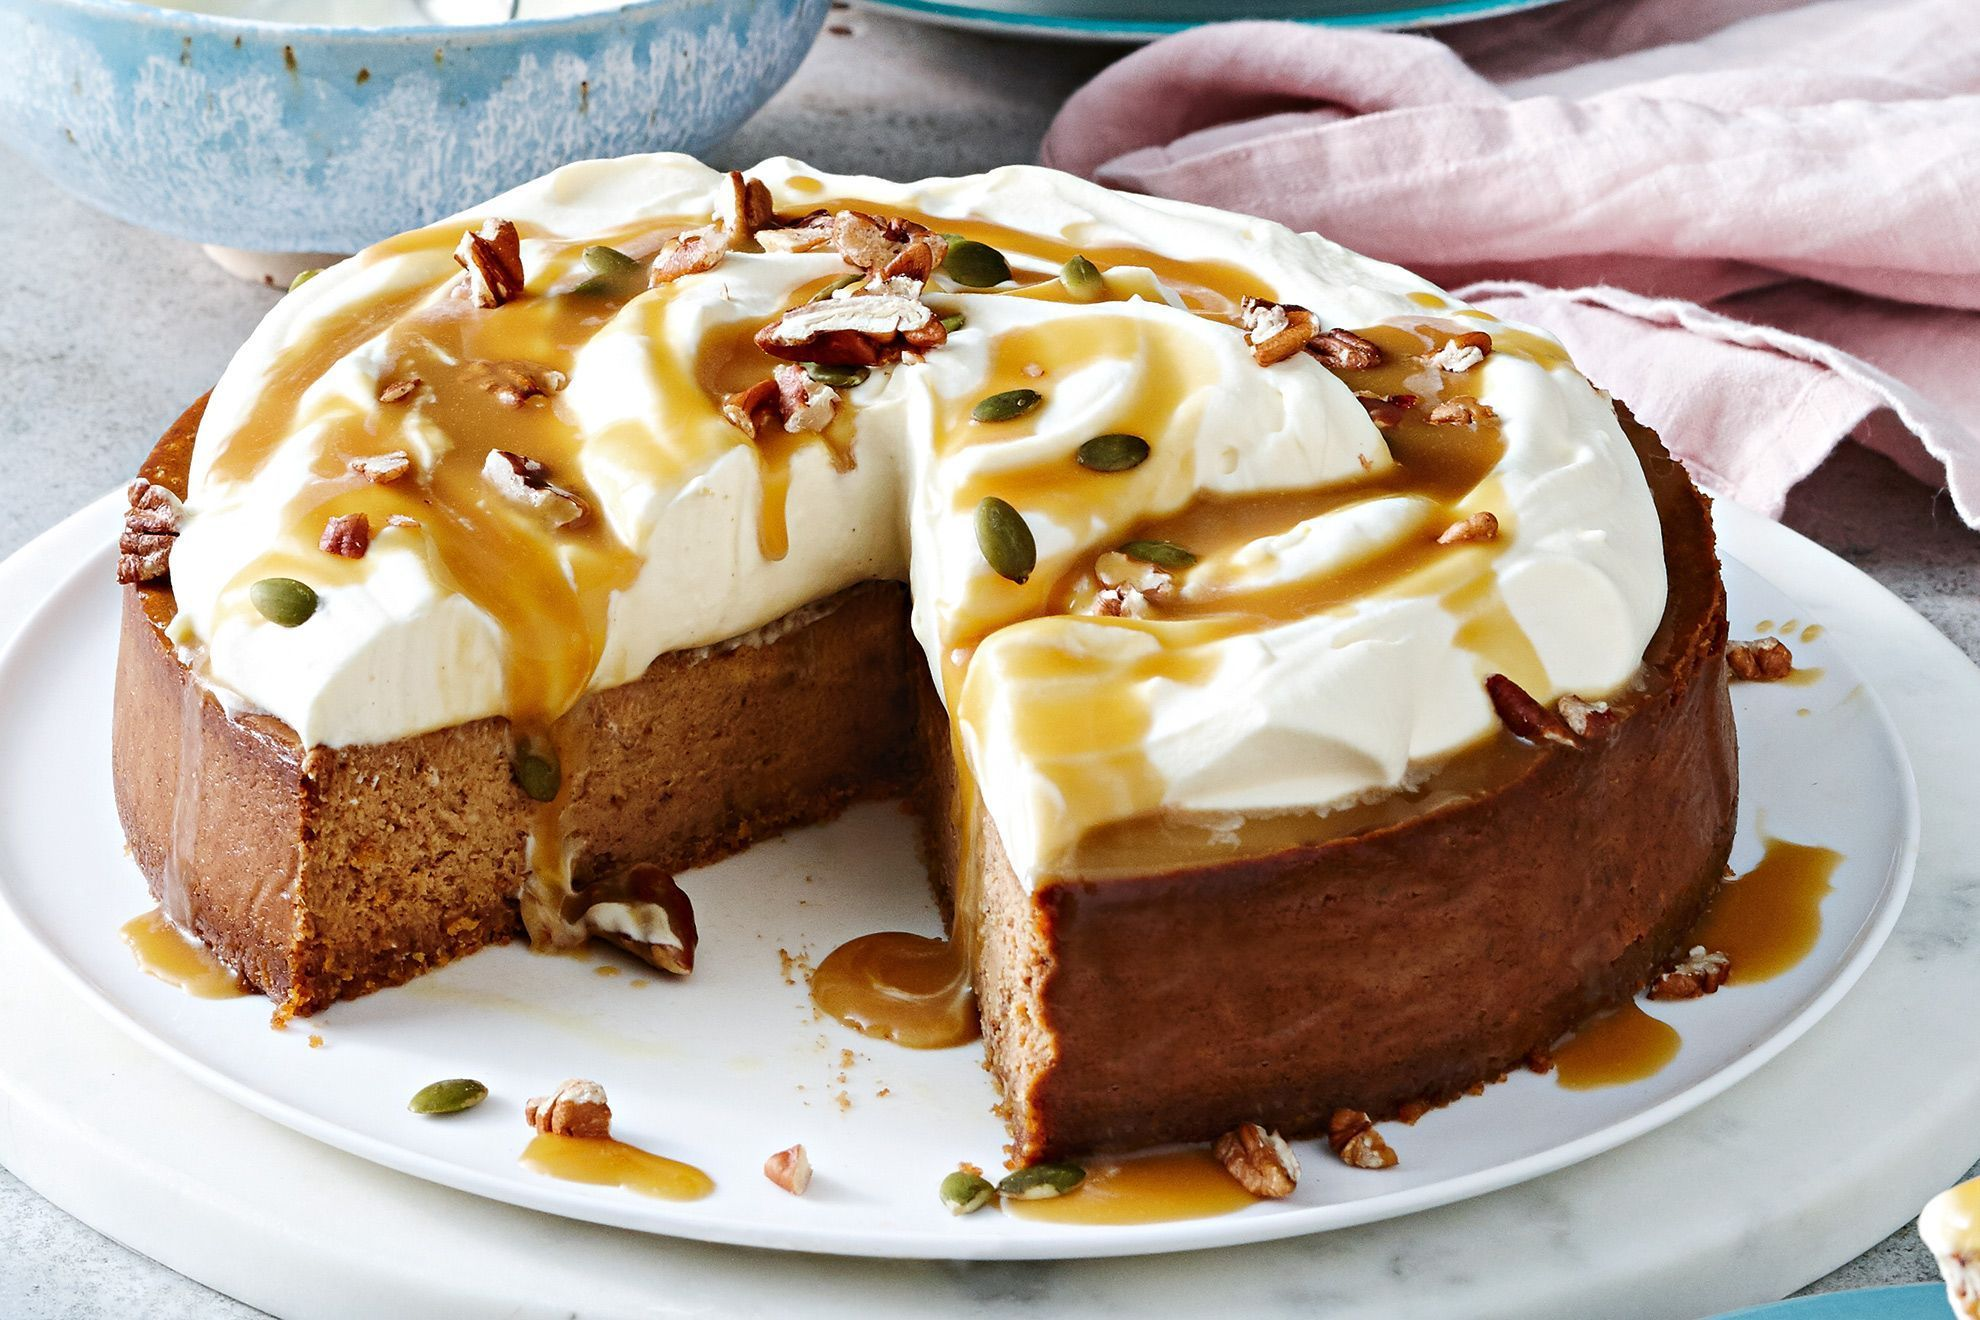 Sticky Date Pudding Meets Cheesecake In This Devilishly Good Dessert We Ve Also Topped It With Whipped Cream Nuts And Desserts Dessert Ingredients Cheesecake